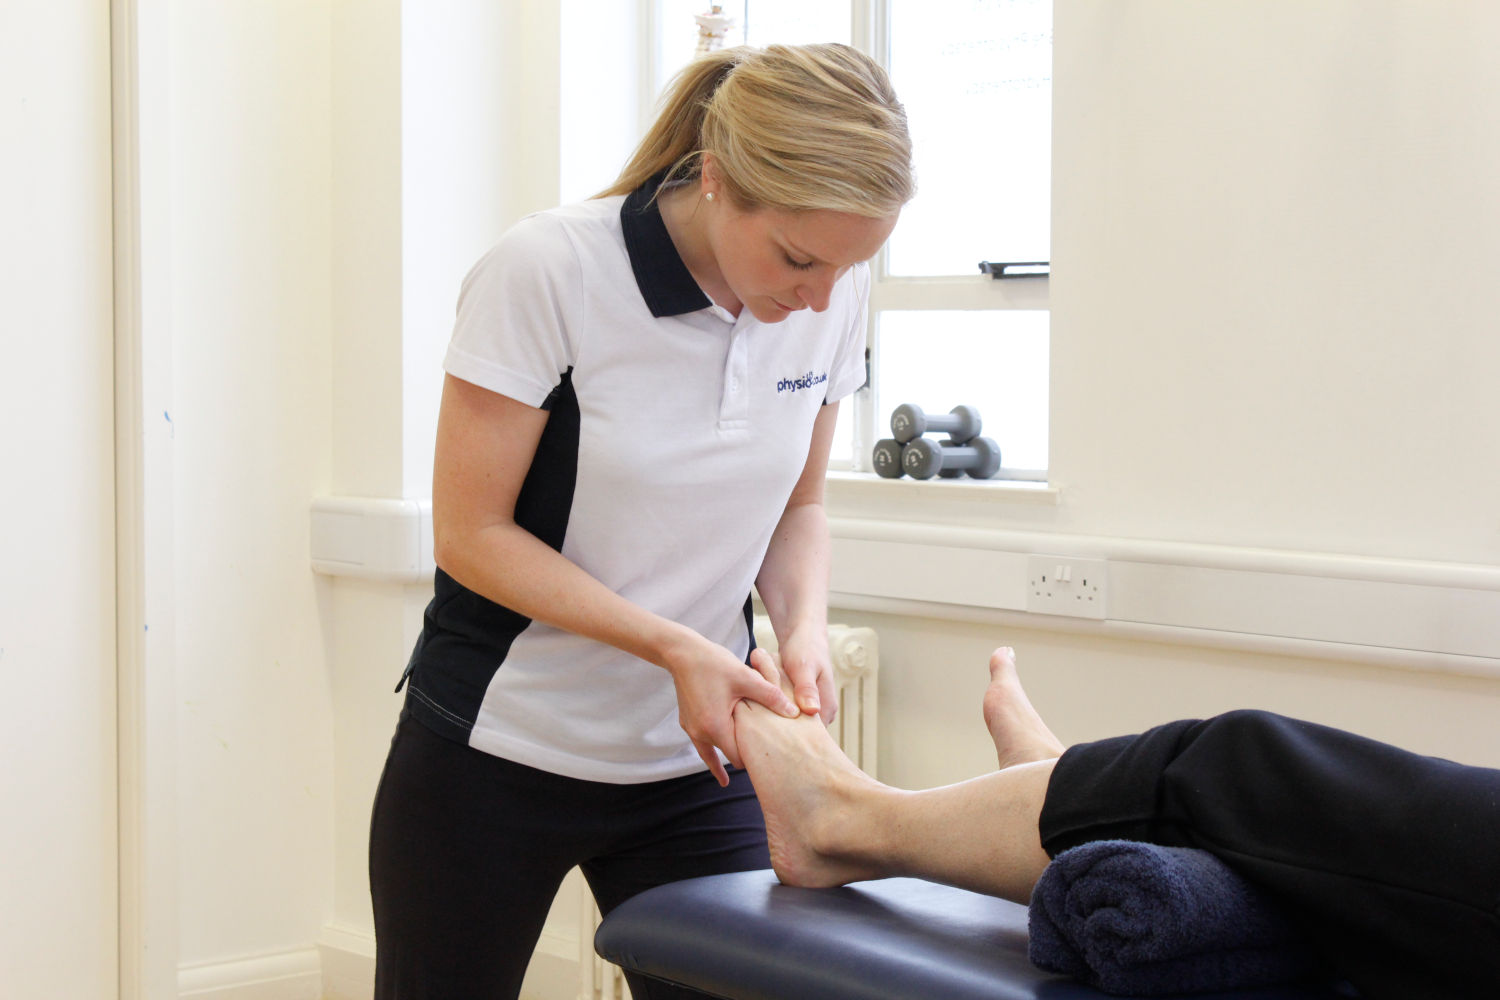 Patient receiving physiotherapy.